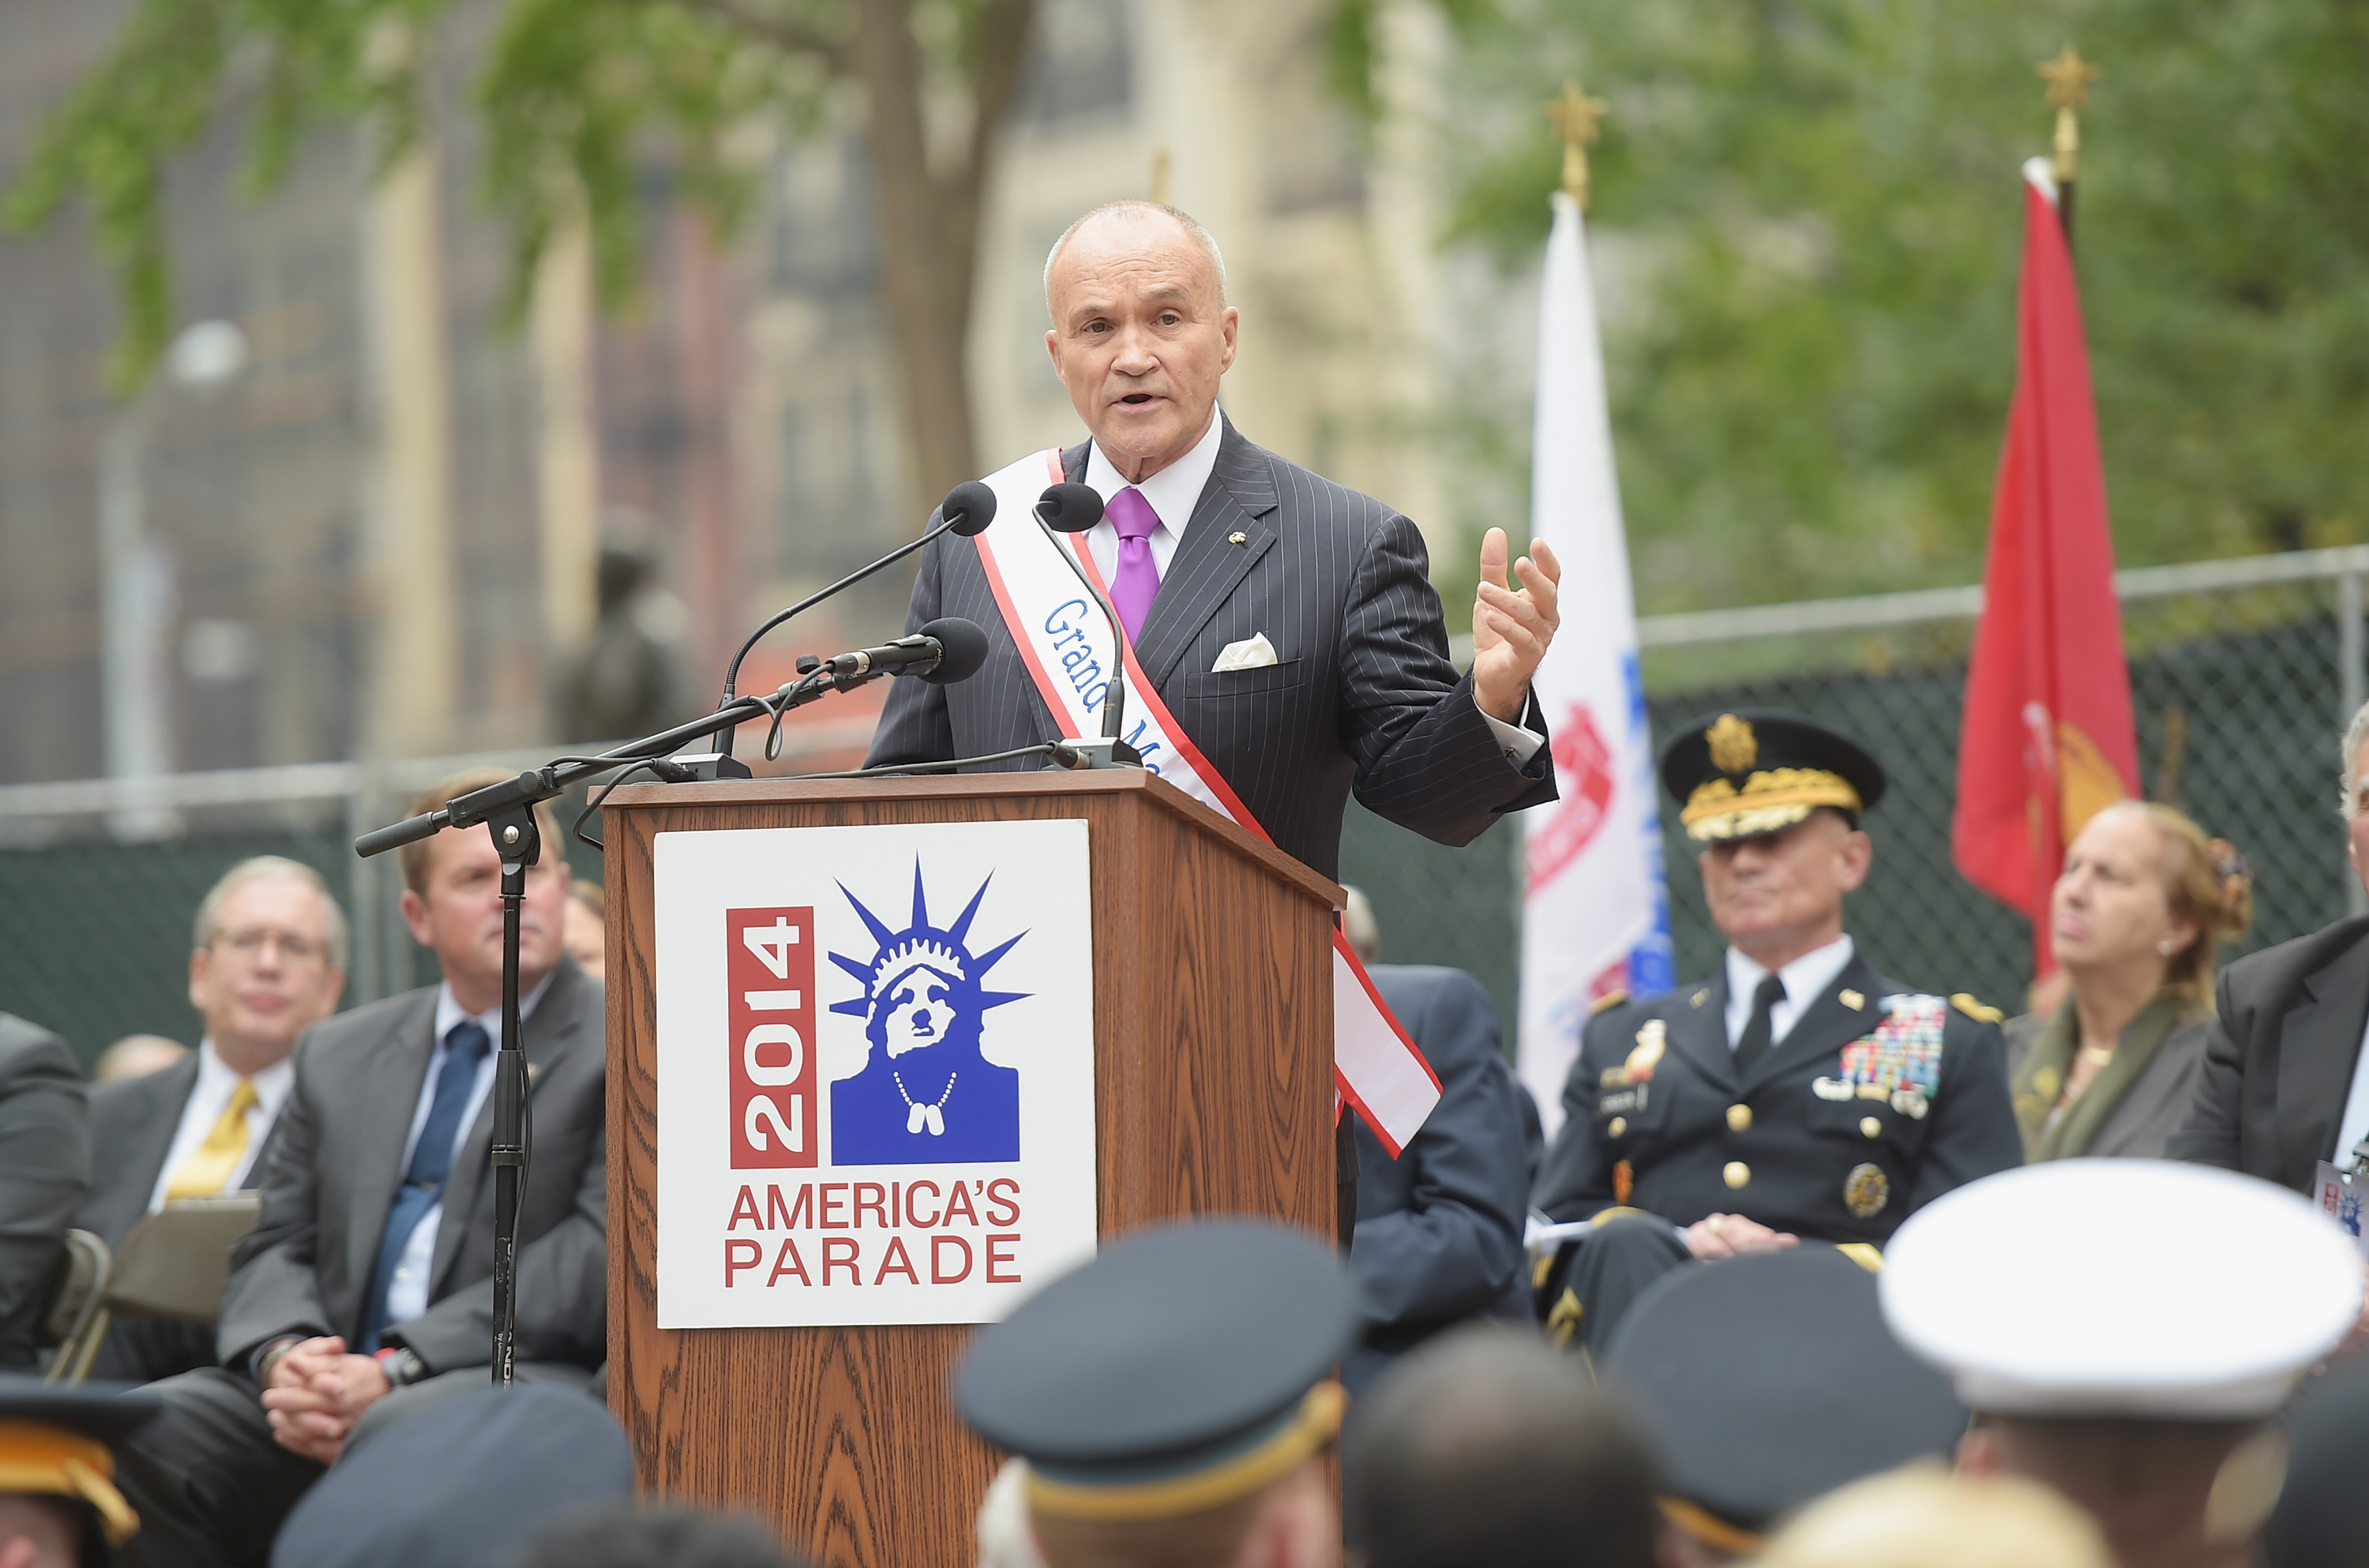 Former New York City Police Commissioner and parade Grand Marshal Raymond Kelly takes part in the opening ceremony preceding the annual Veterans Day Parade. (Photo by Michael Loccisano/Getty Images)